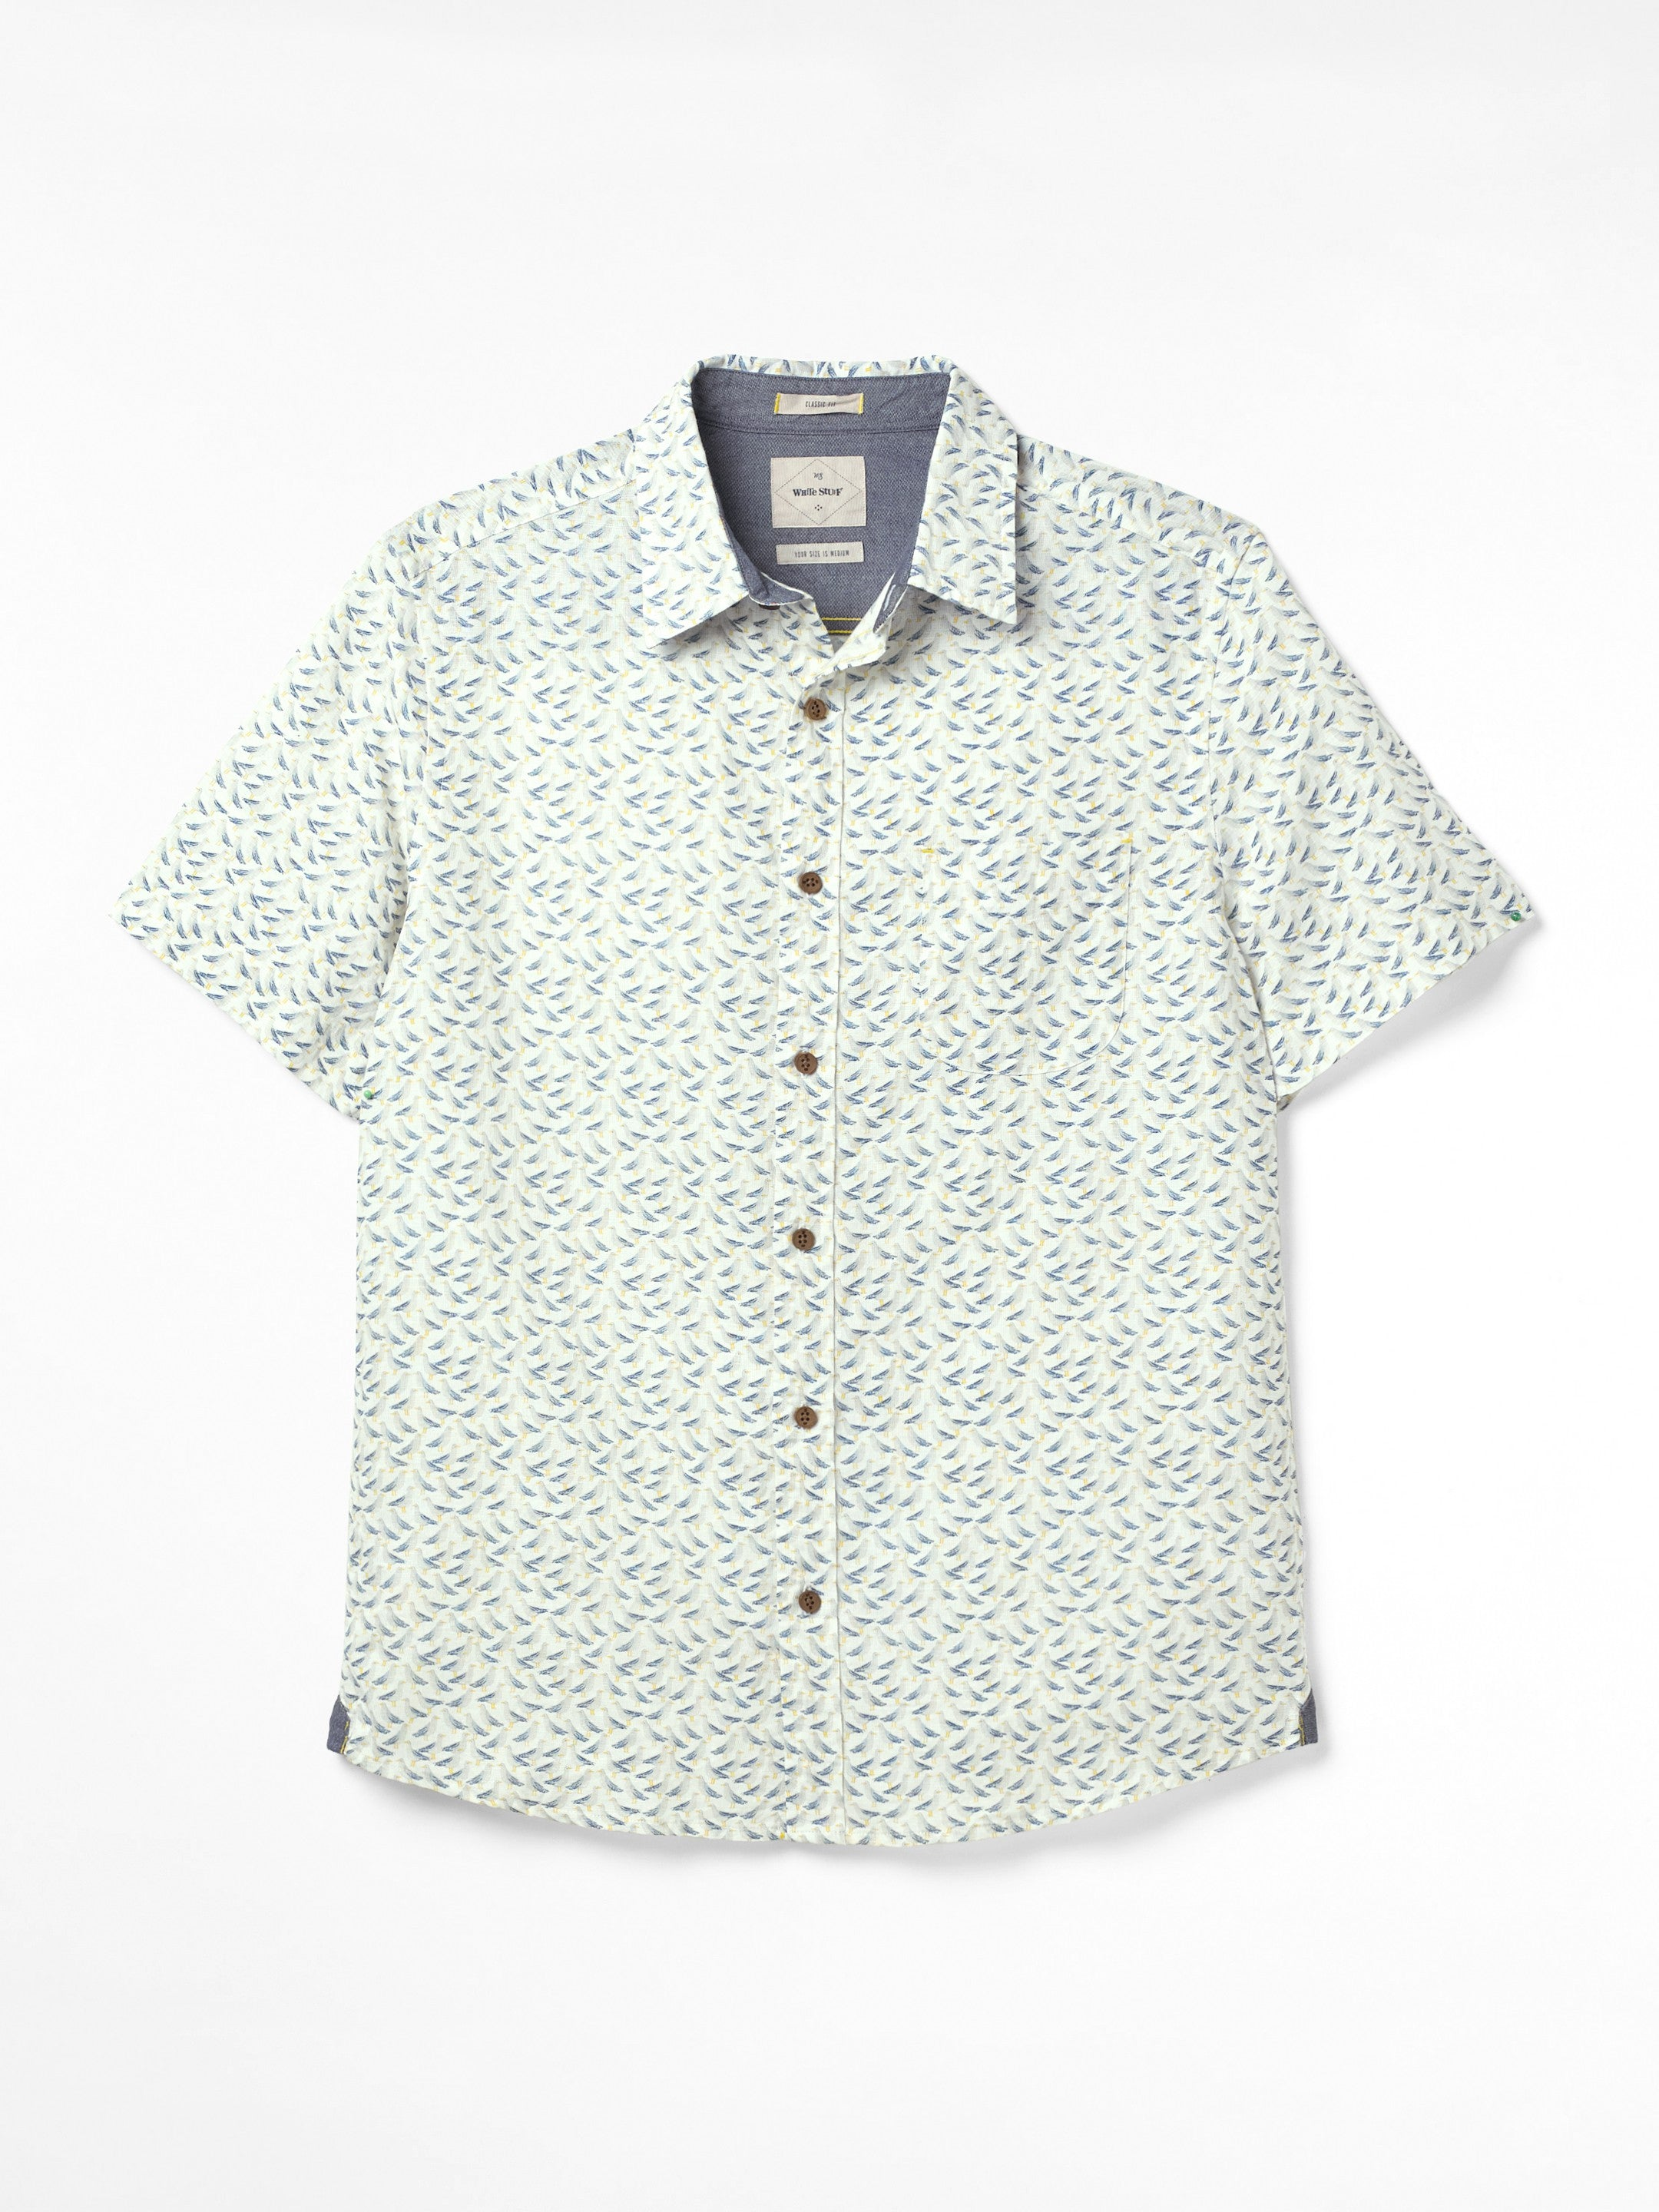 White Stuff Seagulls Print Shirt for Men in Grey